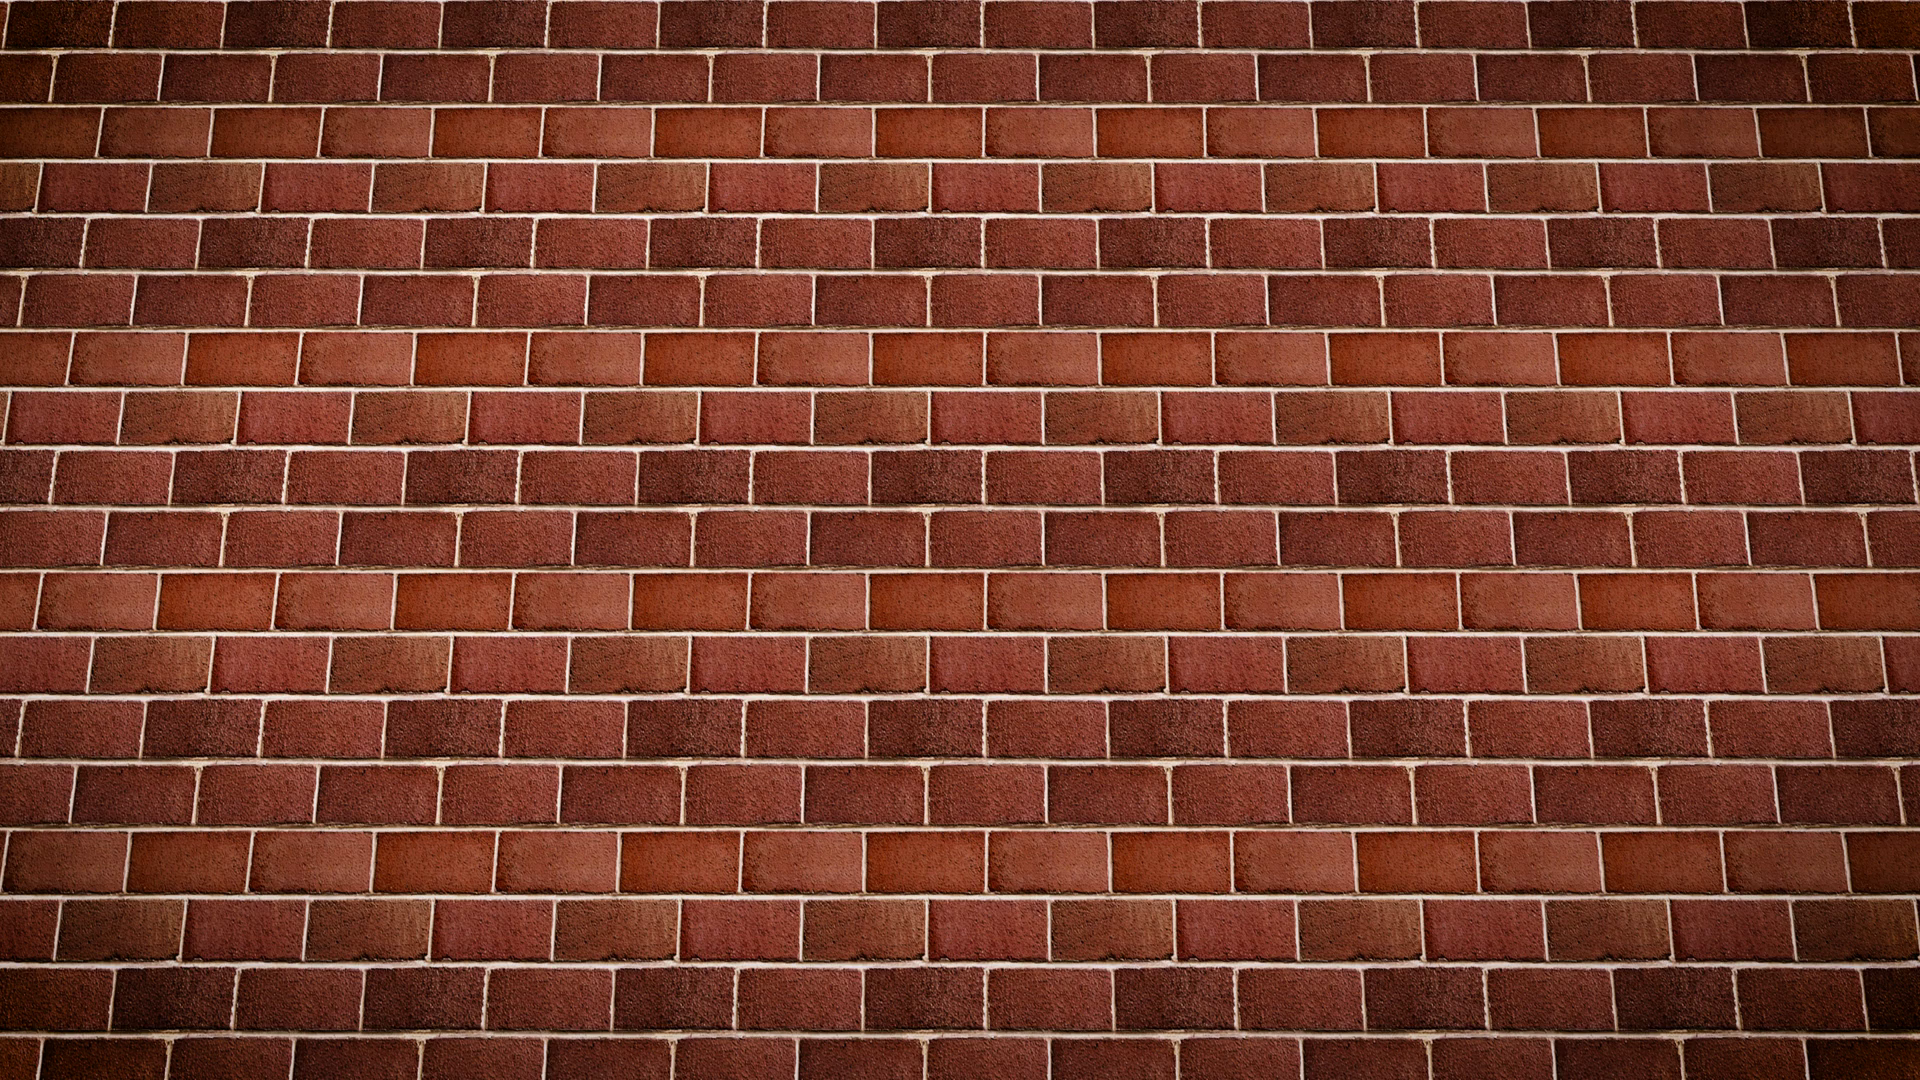 Brick Wall Png (98+ images in Collection) Page 2.